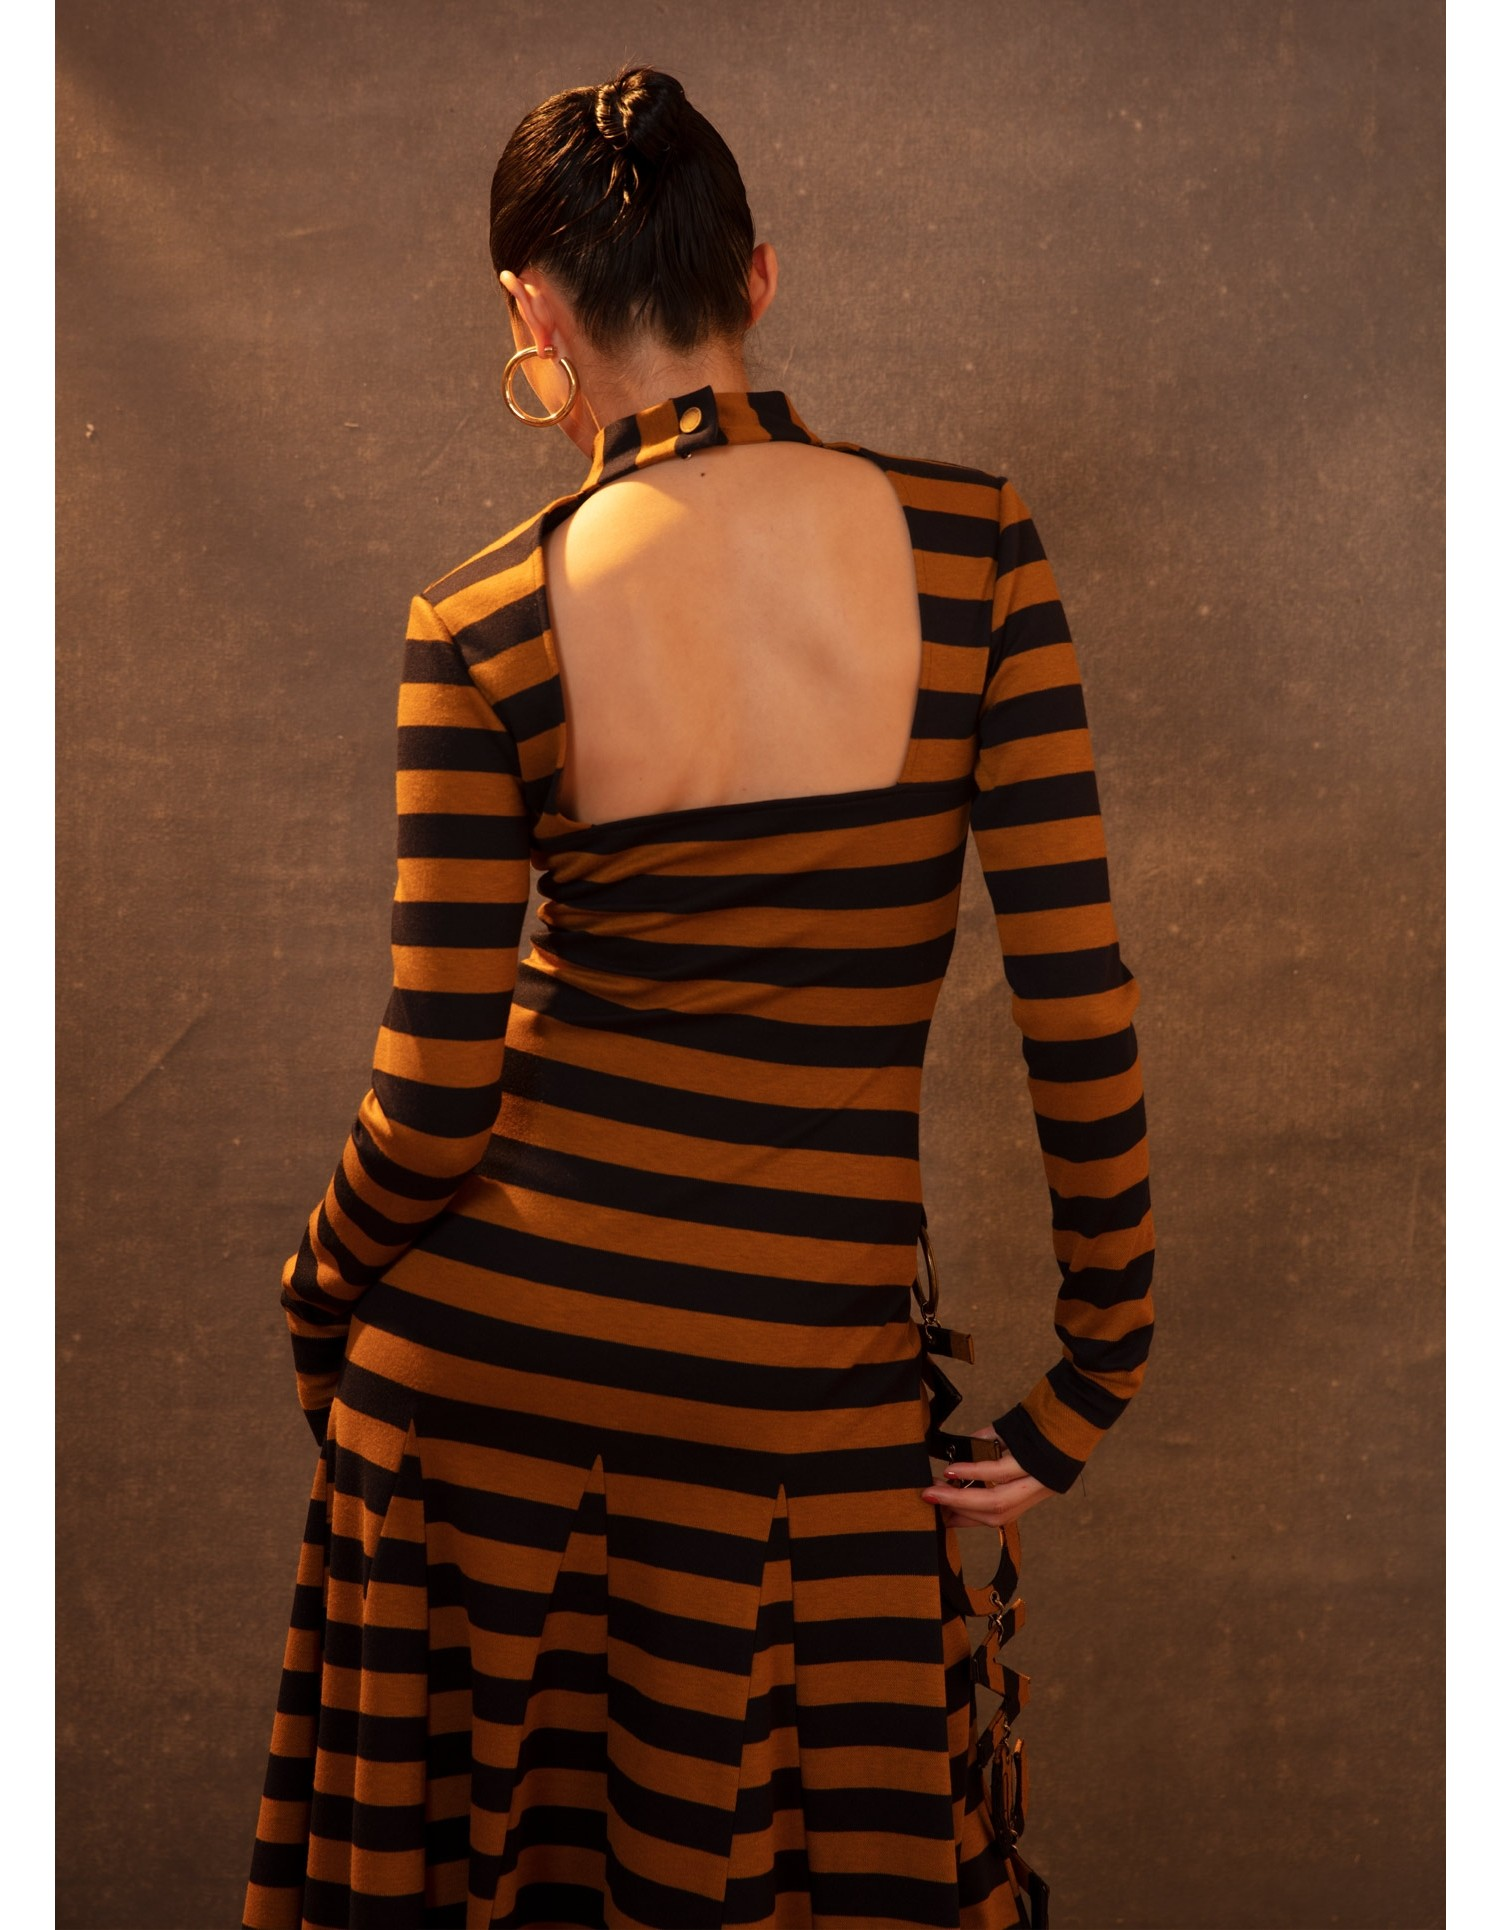 MONSE Stripe Godet Dress in Tan and Midnight on Model Detail View